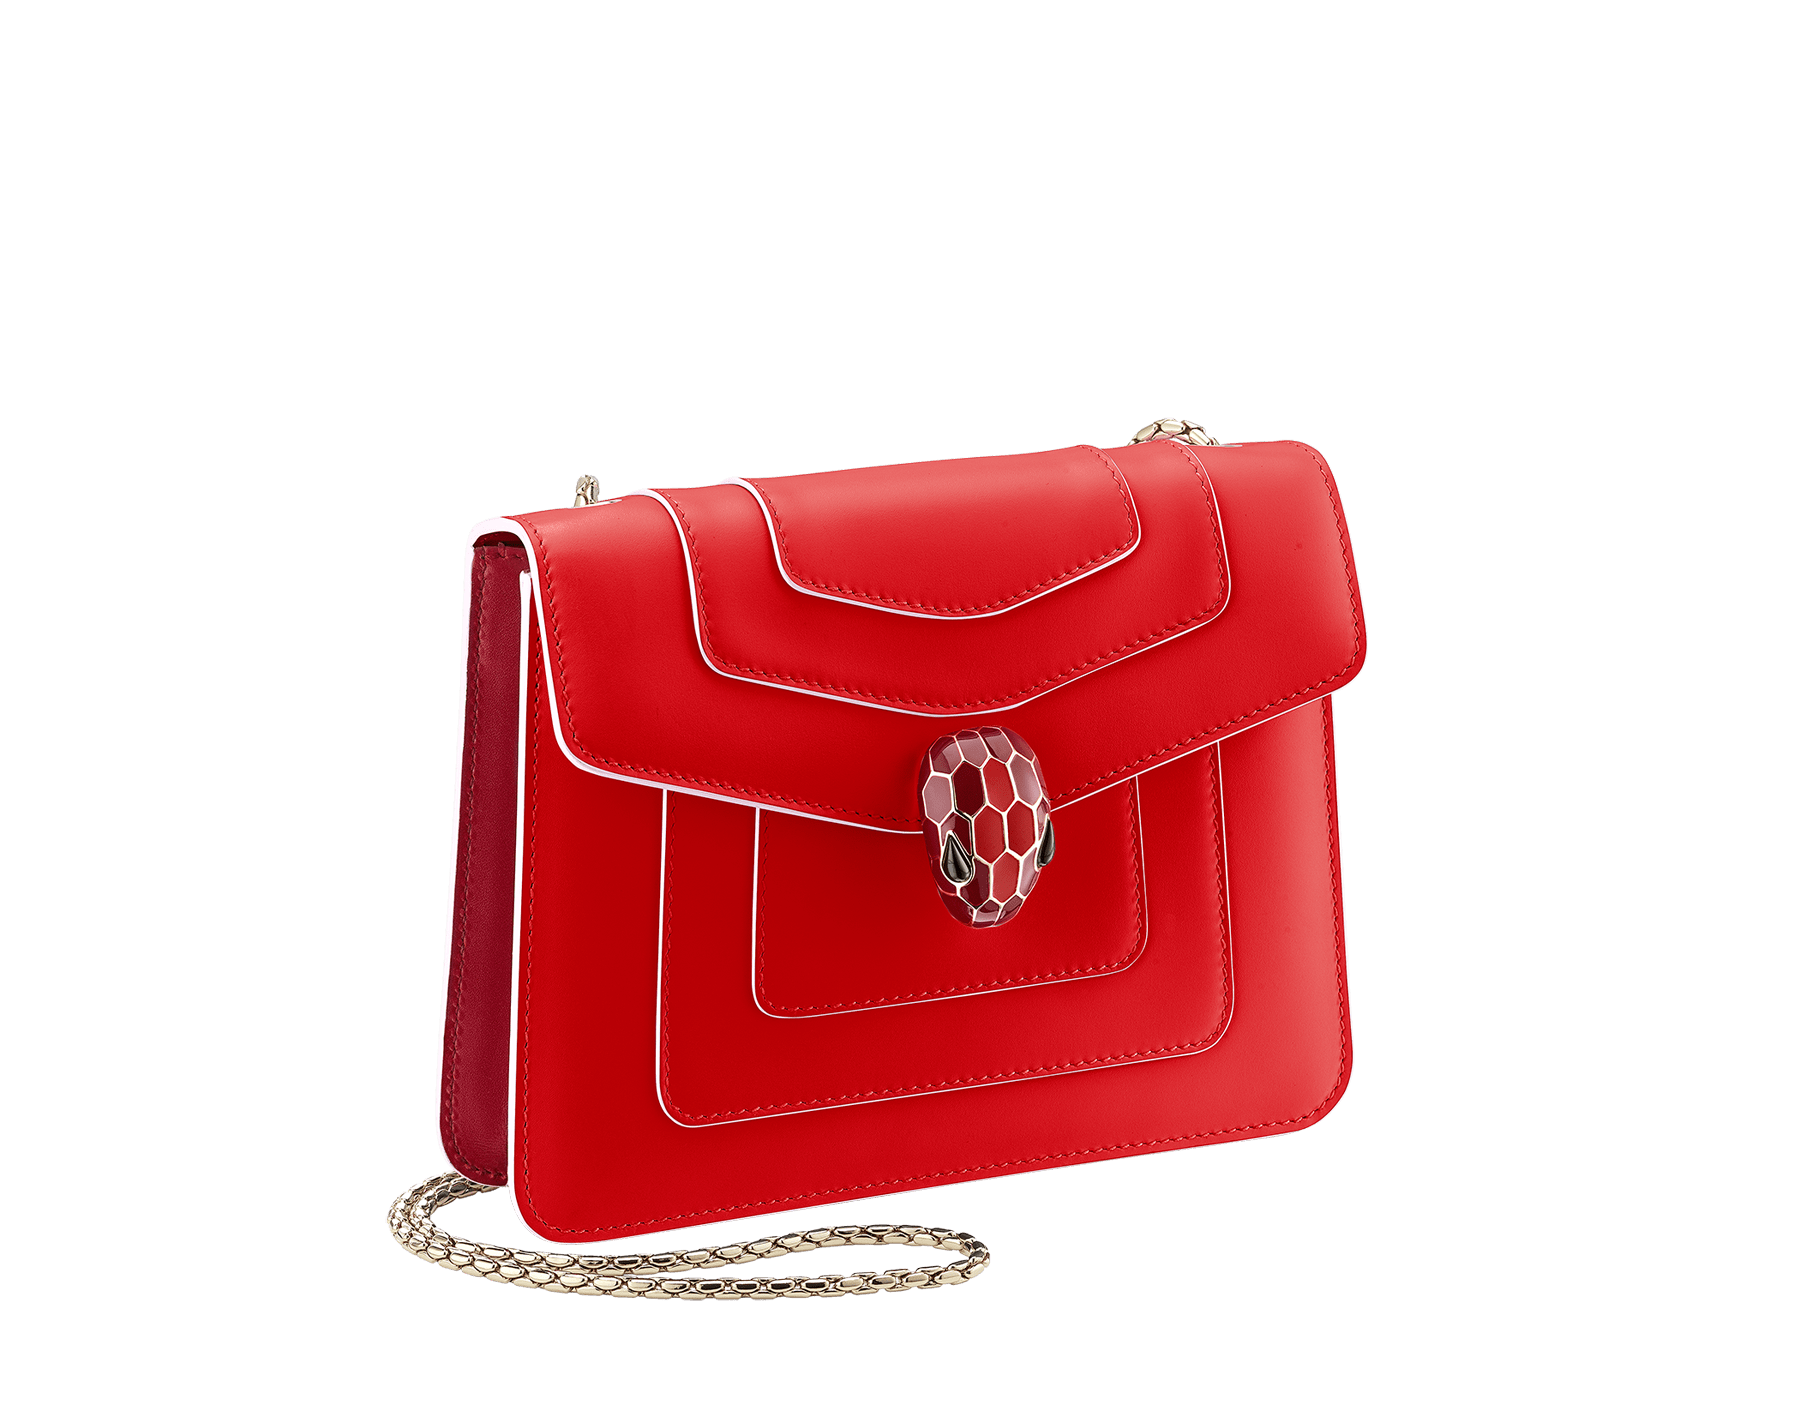 Serpenti Forever crossbody bag in Roman garnet calf leather, with rosa di francia calf leather sides. Iconic snakehead closure in light gold plated brass embellished rosa di francia and black enamel and black onyx eyes . 422-BCLb image 2